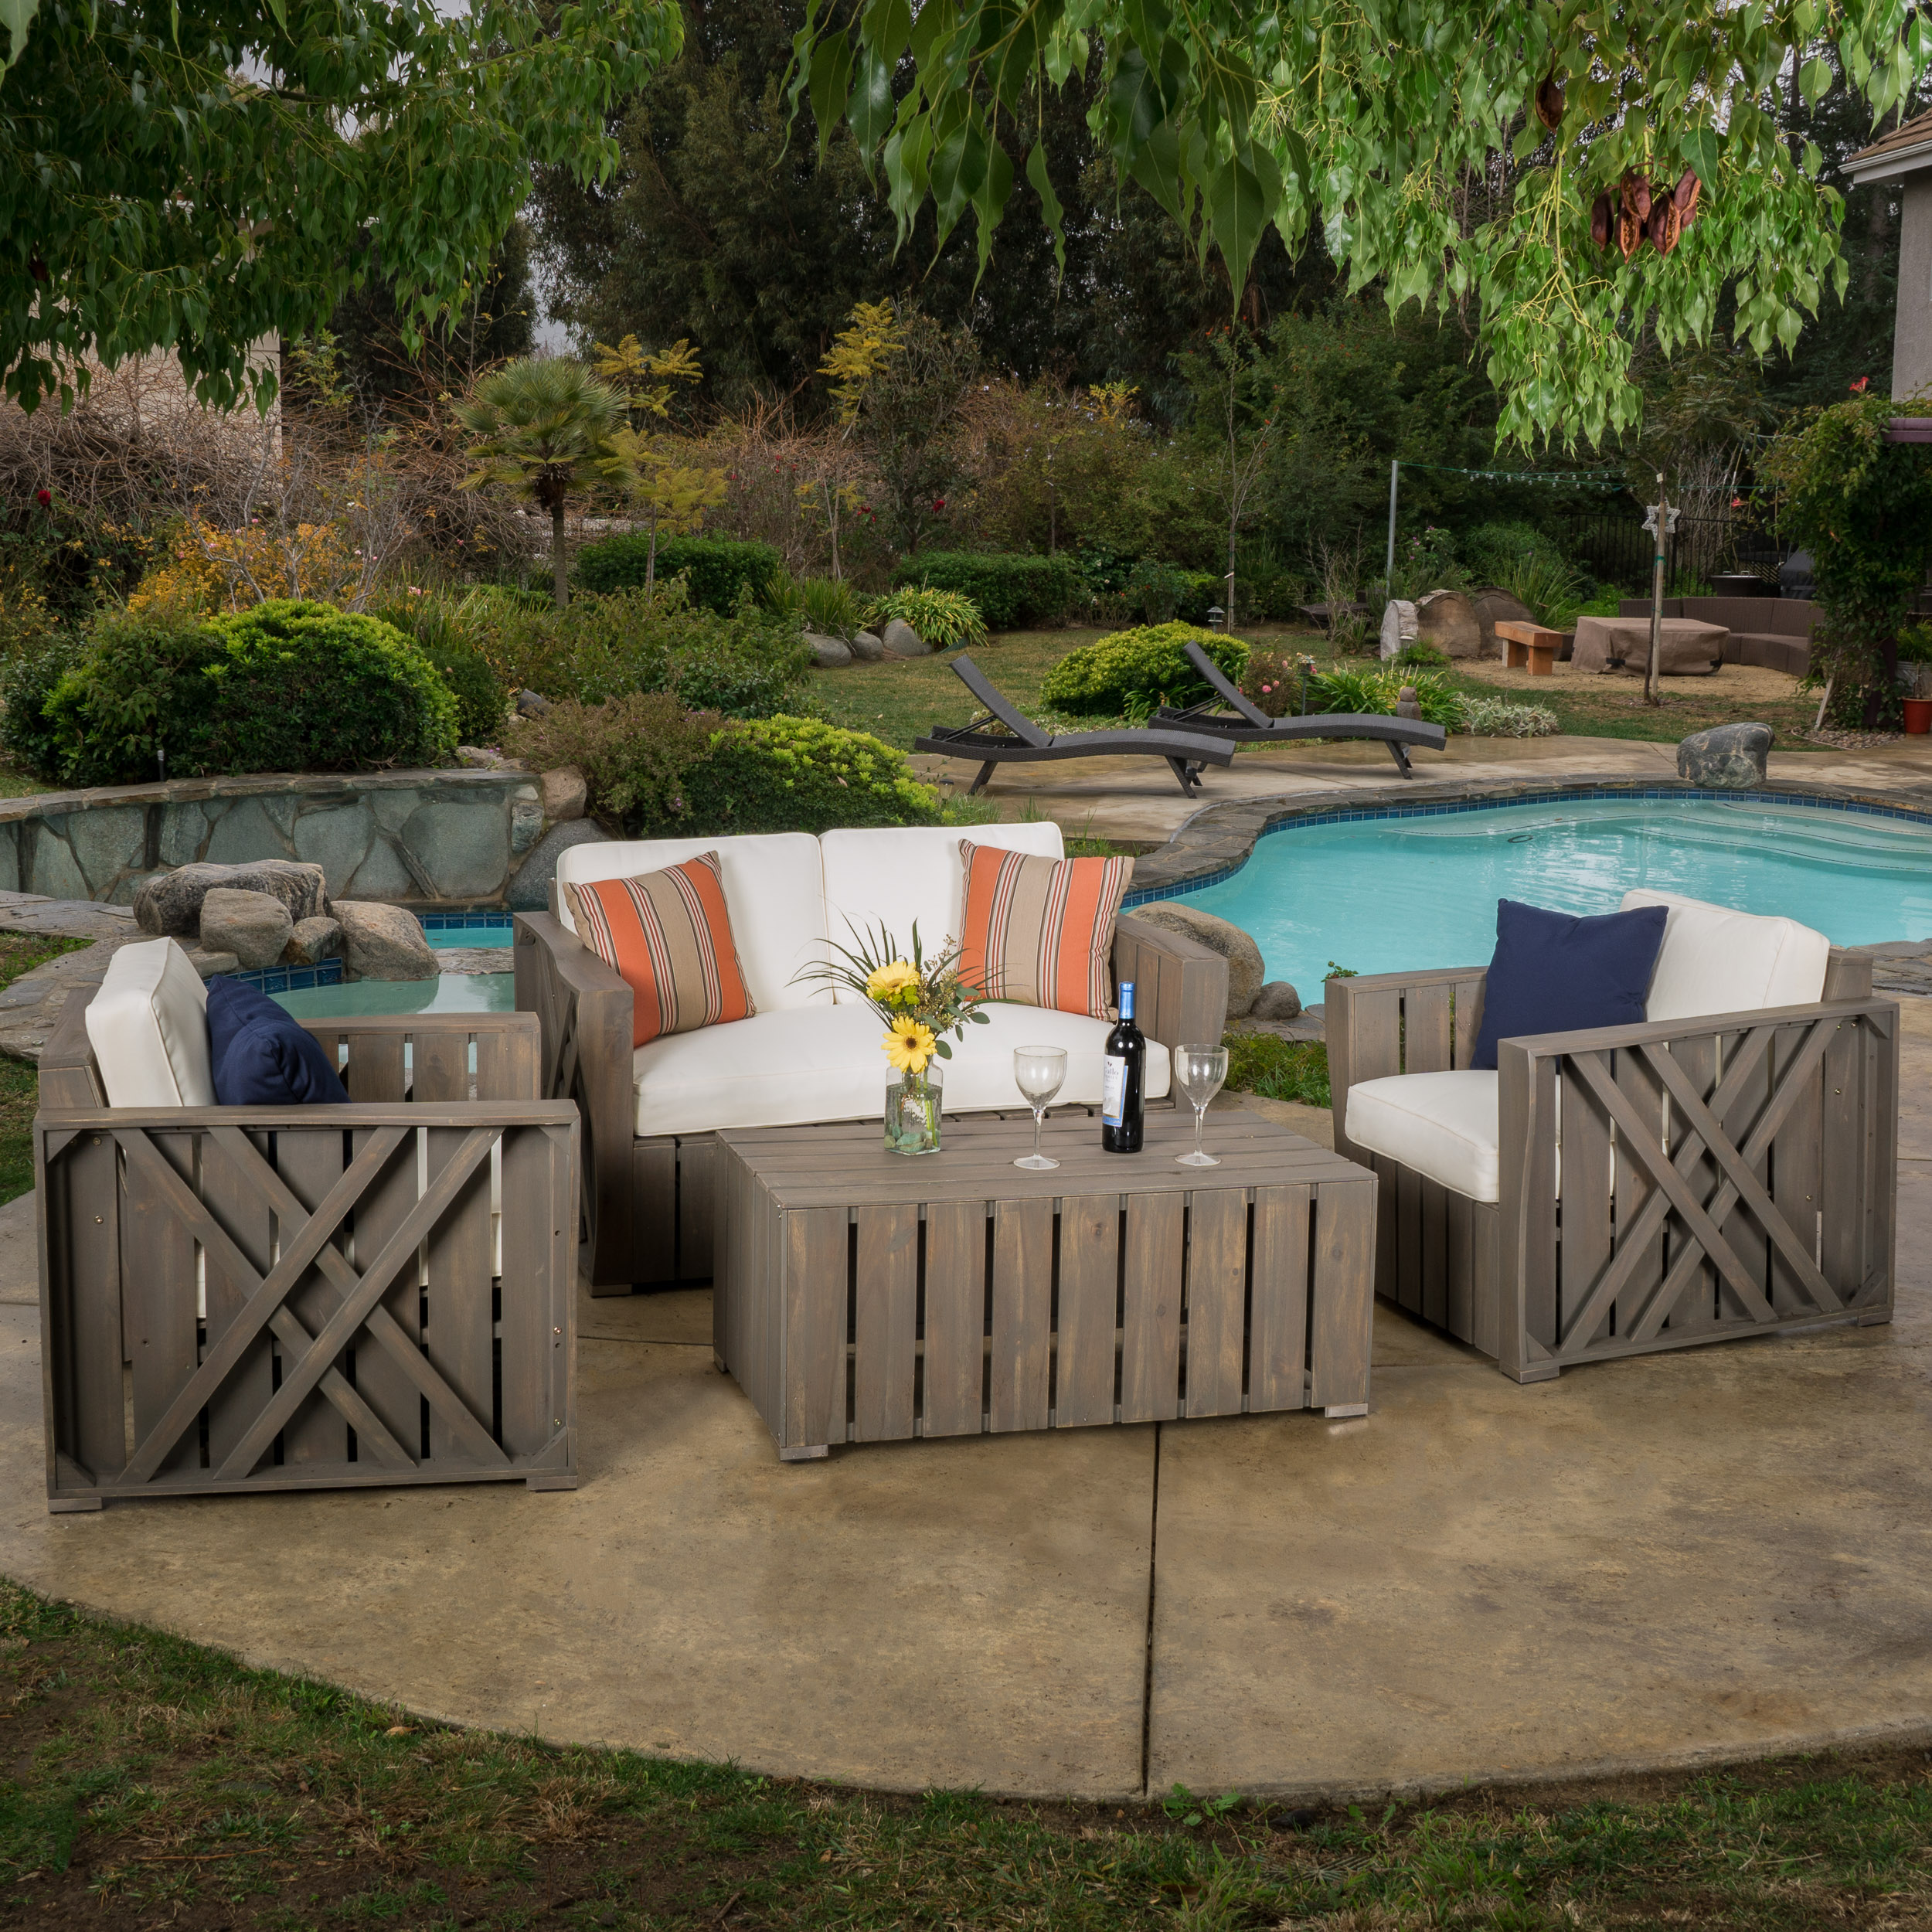 Hipali Outdoor Acacia Wood 4 piece Chat Set with Cushions, Grey, Cream